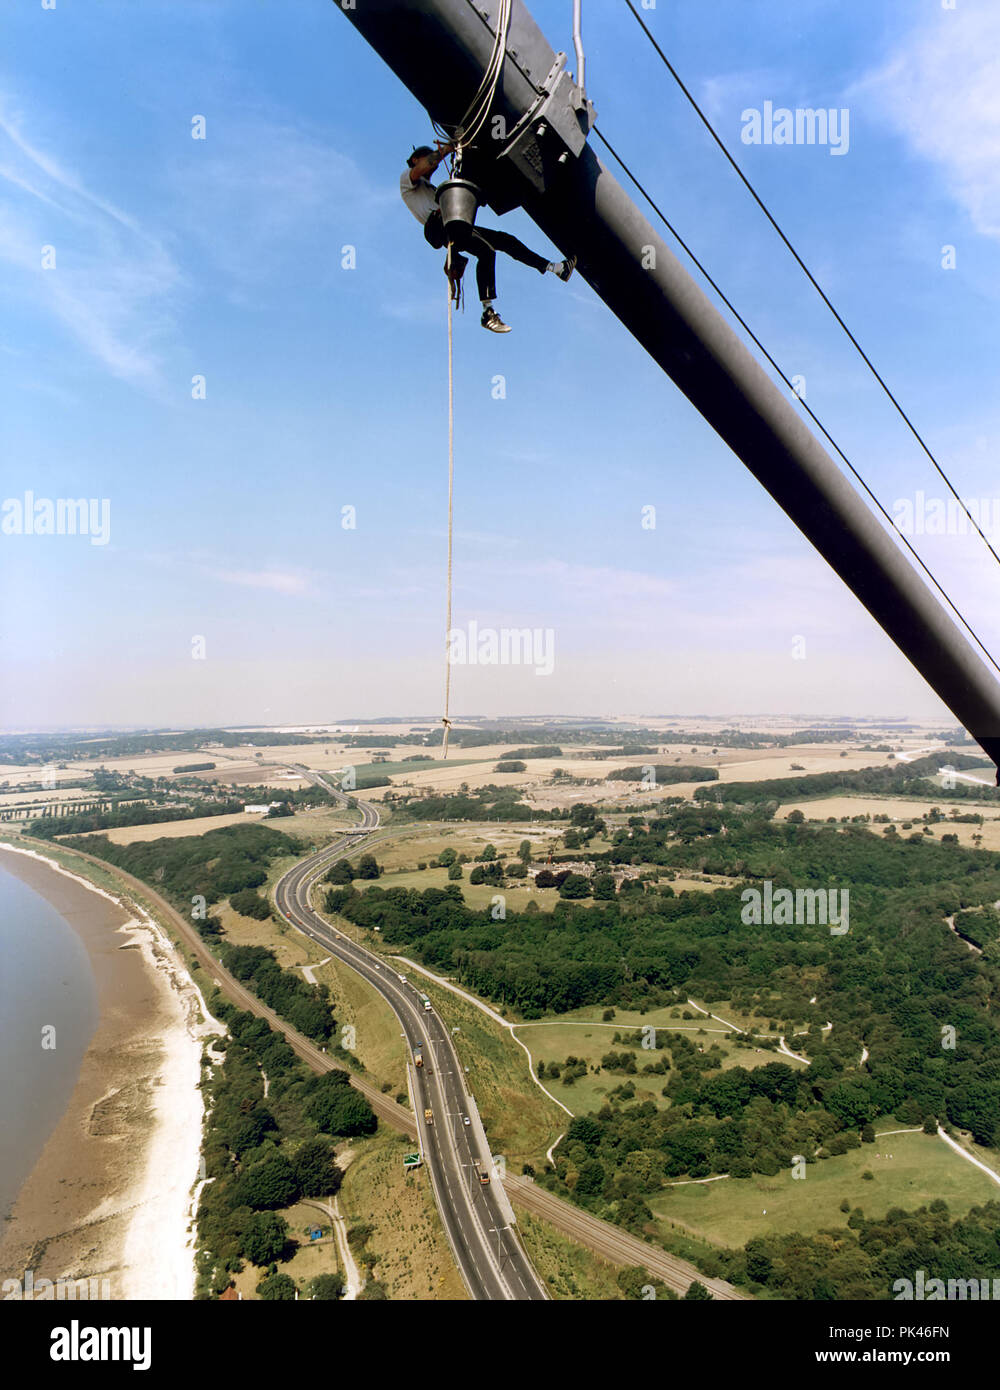 An abseiler checks the condition of the cables on the Humber Bridge - Stock Image